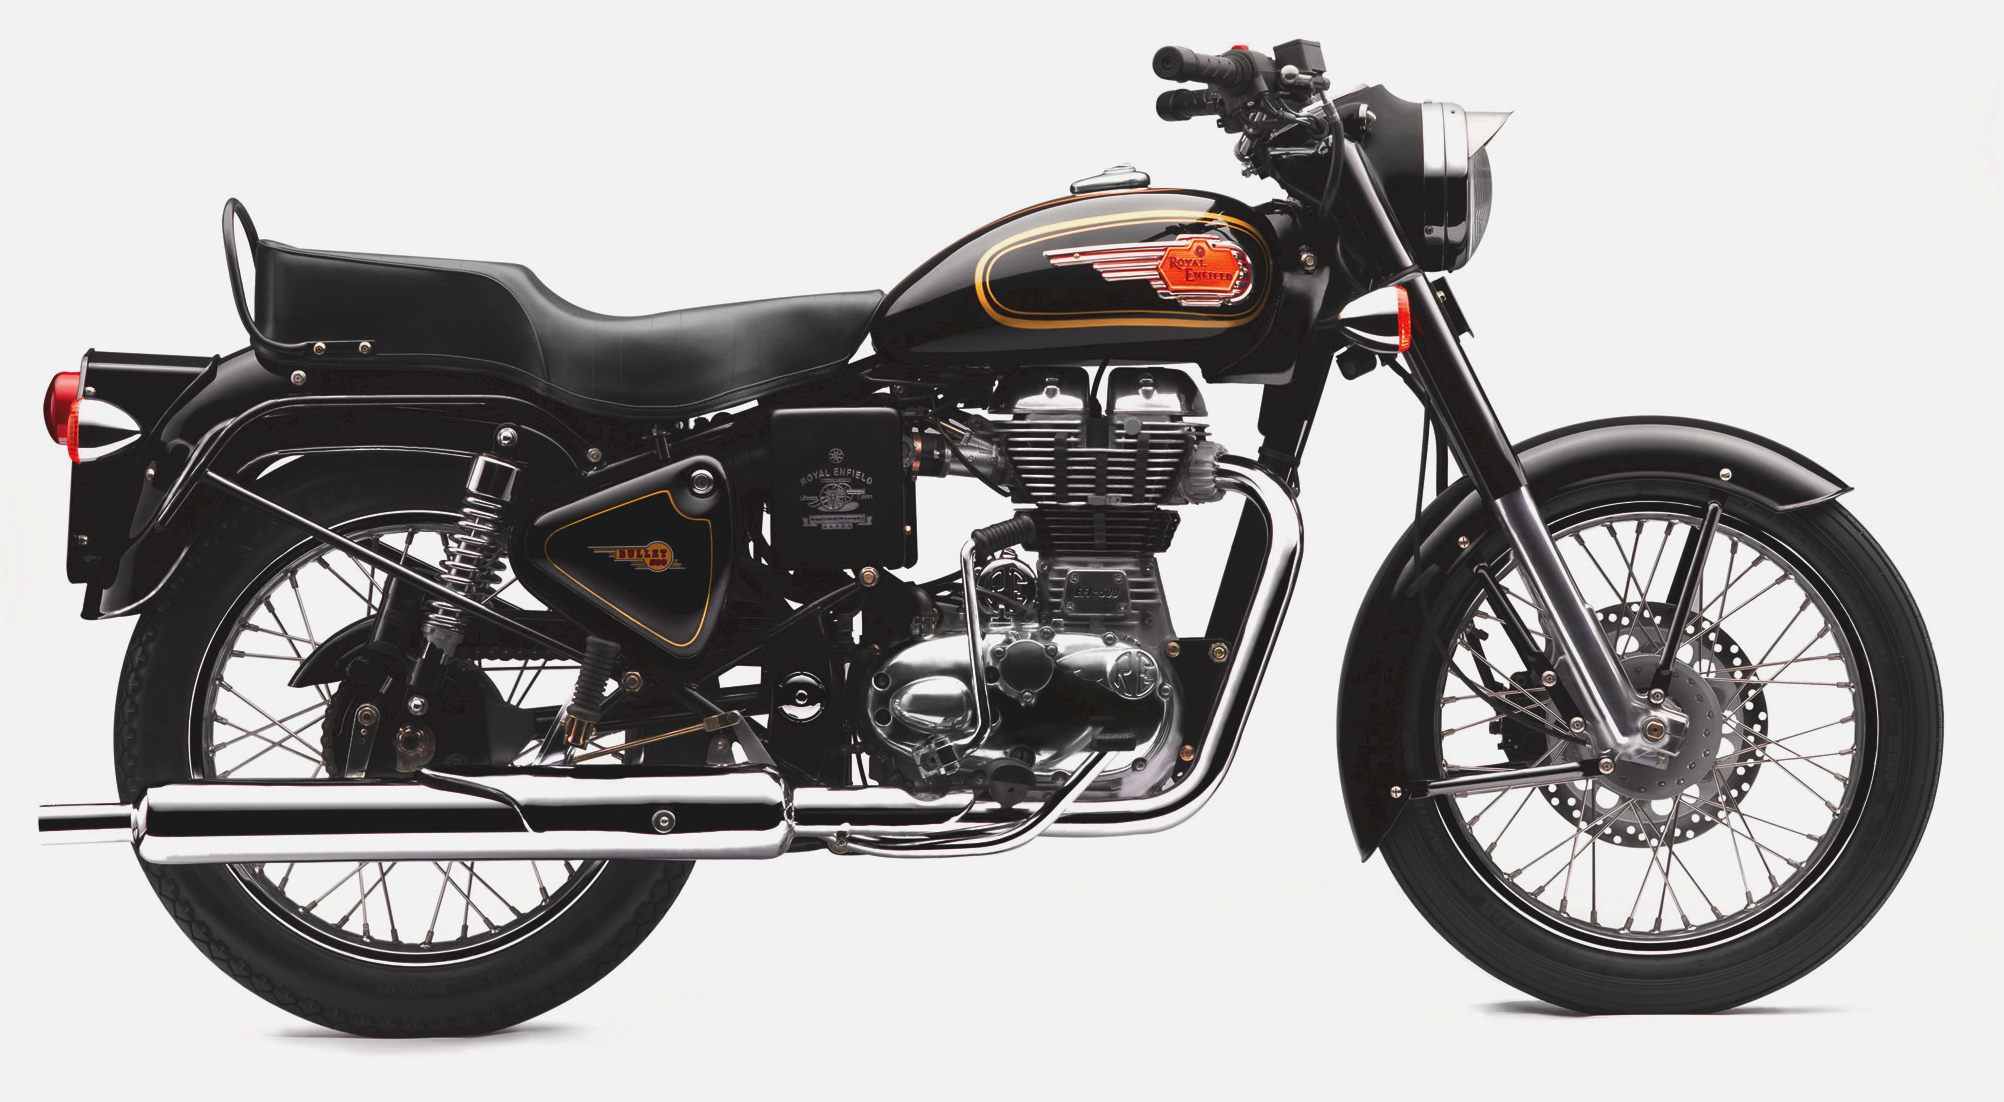 Royal Enfield Bullet 500 Trial Trail 2003 images #123200